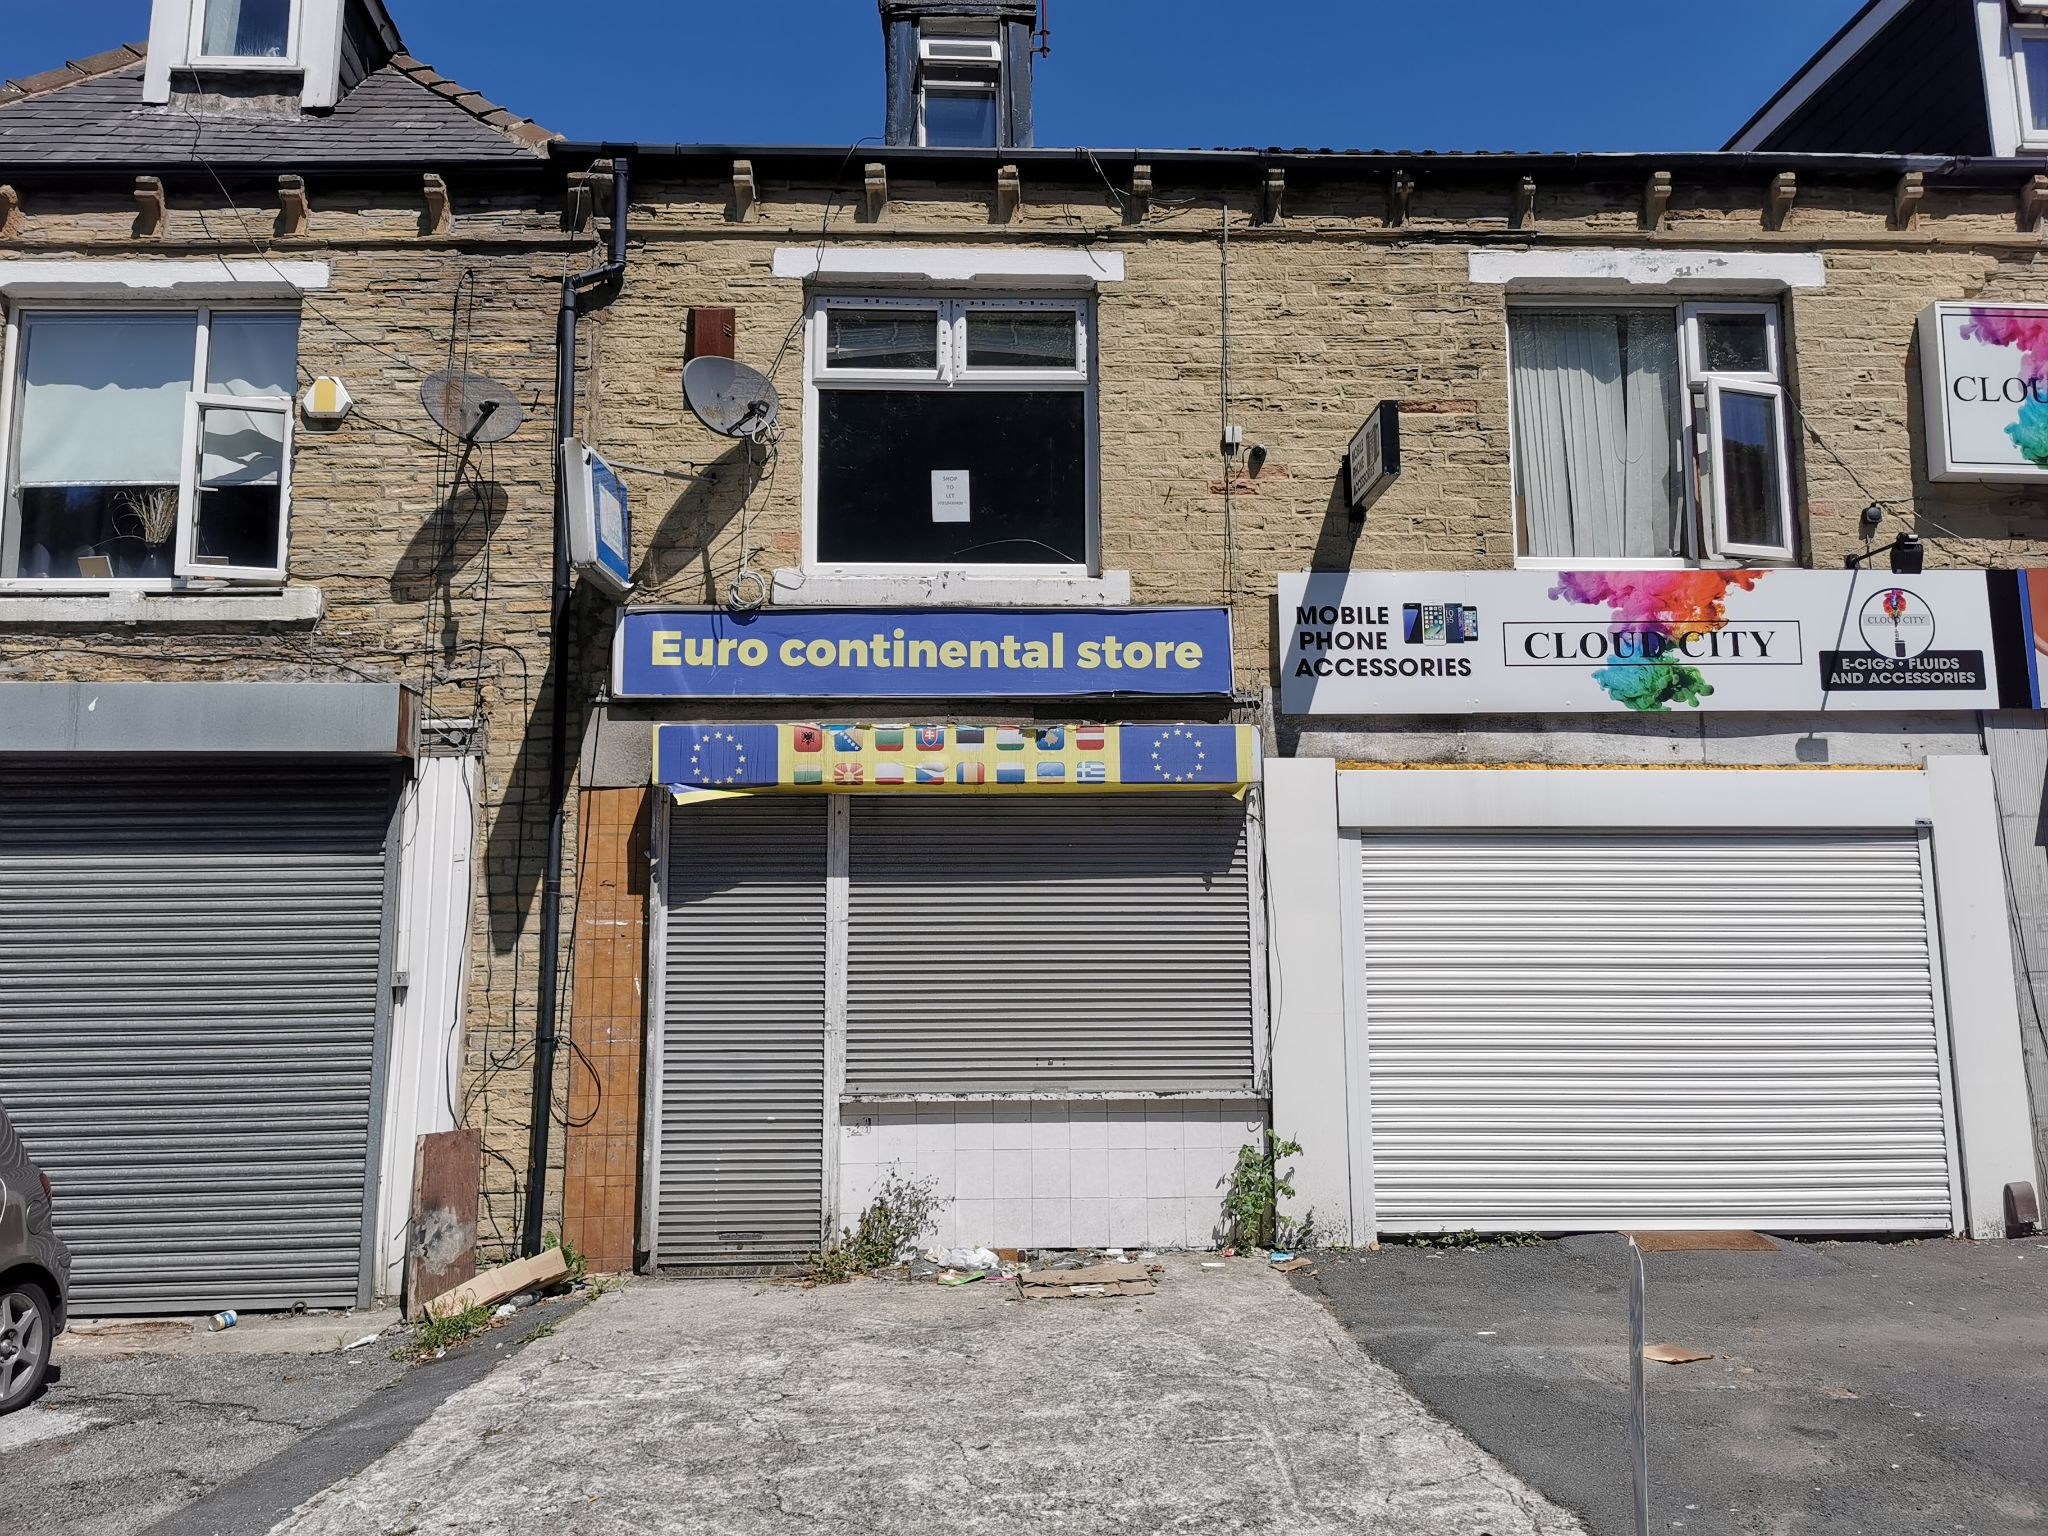 3 bedroom apartment flat/apartment For Sale in Bradford - Photograph 1.